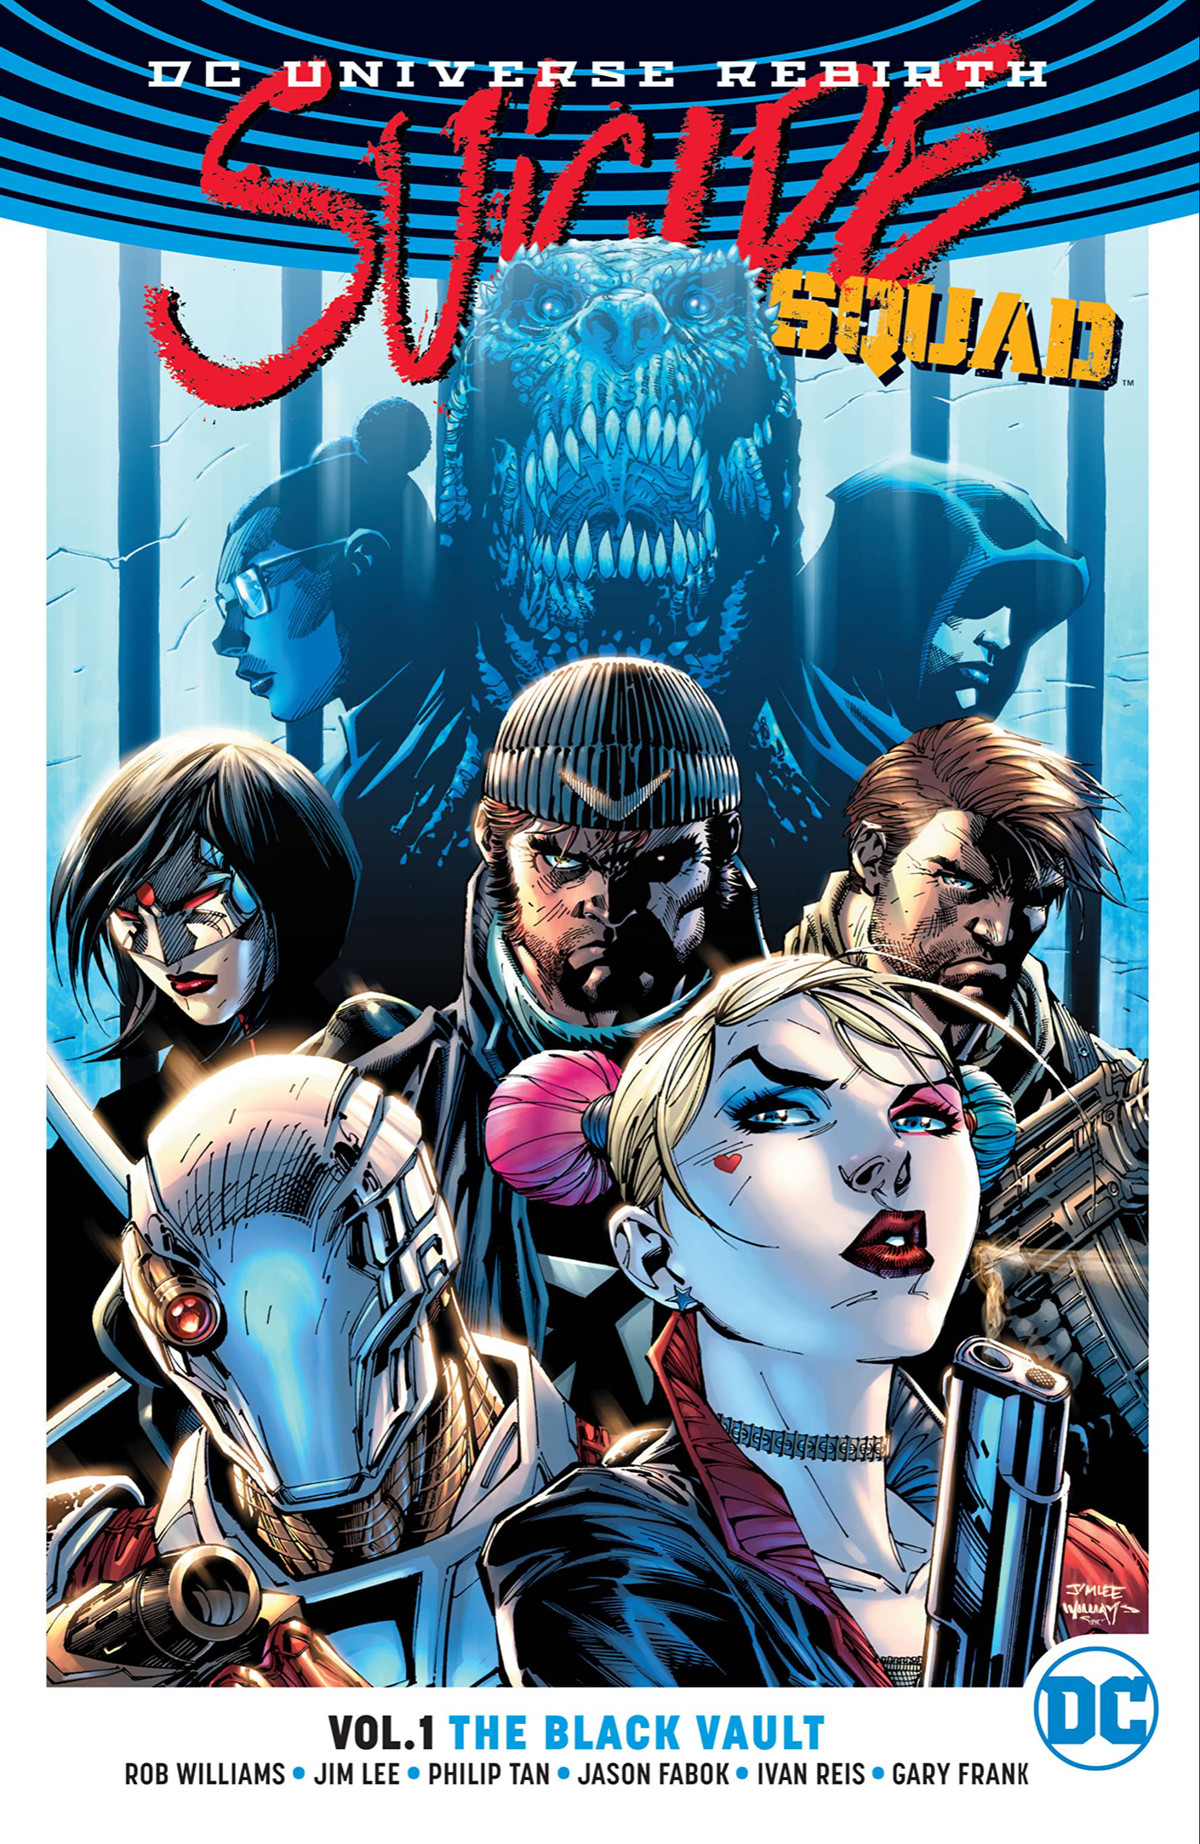 The Suicide Squad on the cover of Suicide Squad Vol. 1: The Black Vault, DC Comics (2016).